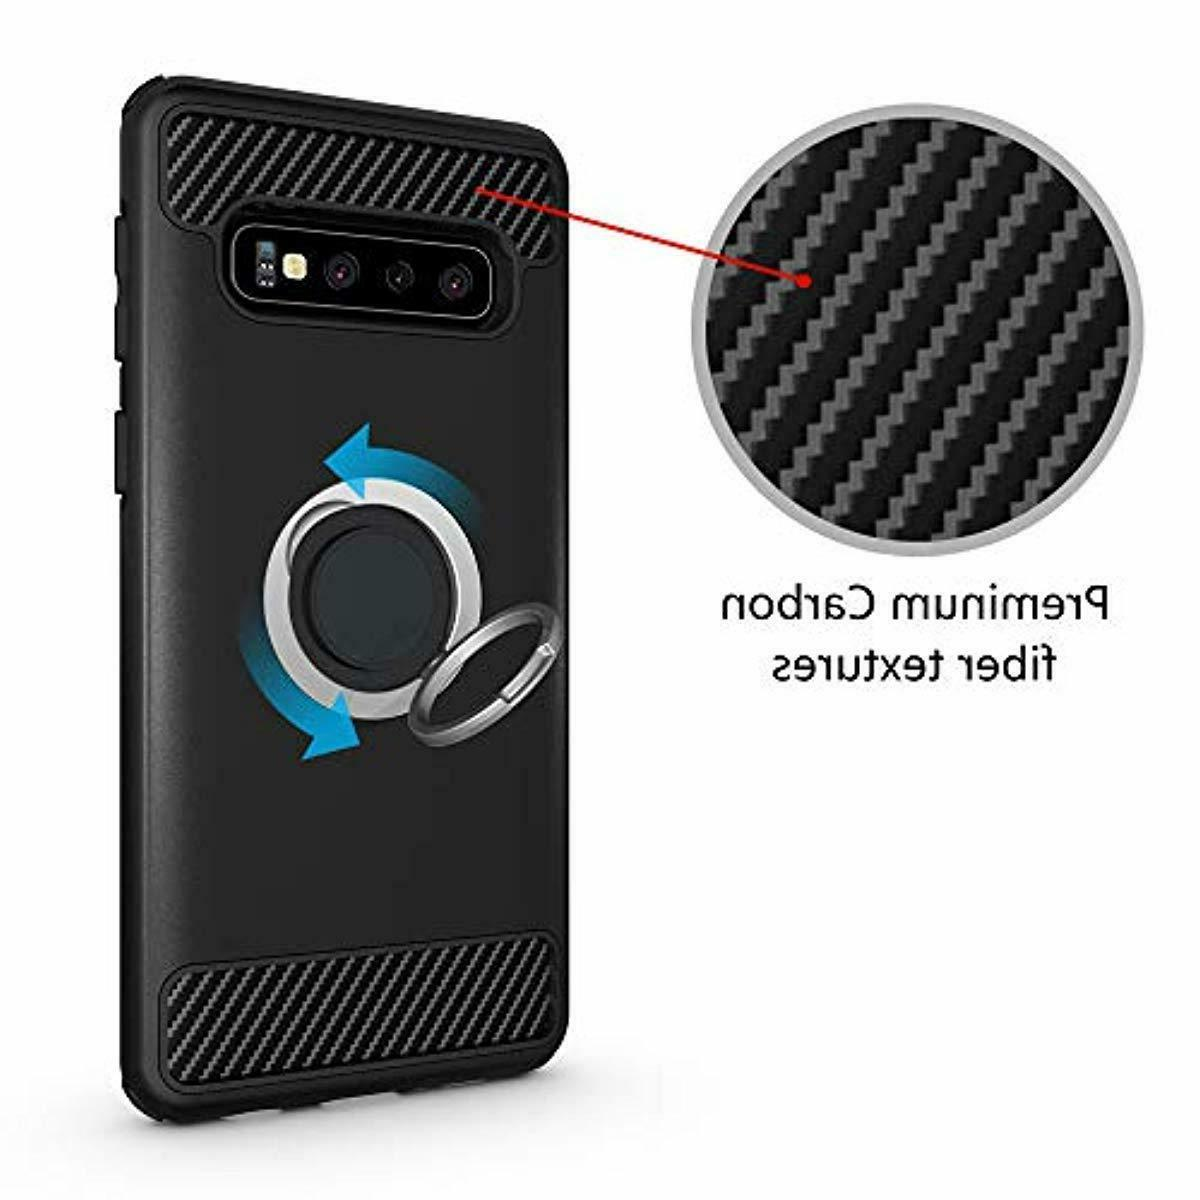 Asuwish Phone Case with Tempered Glass Protec